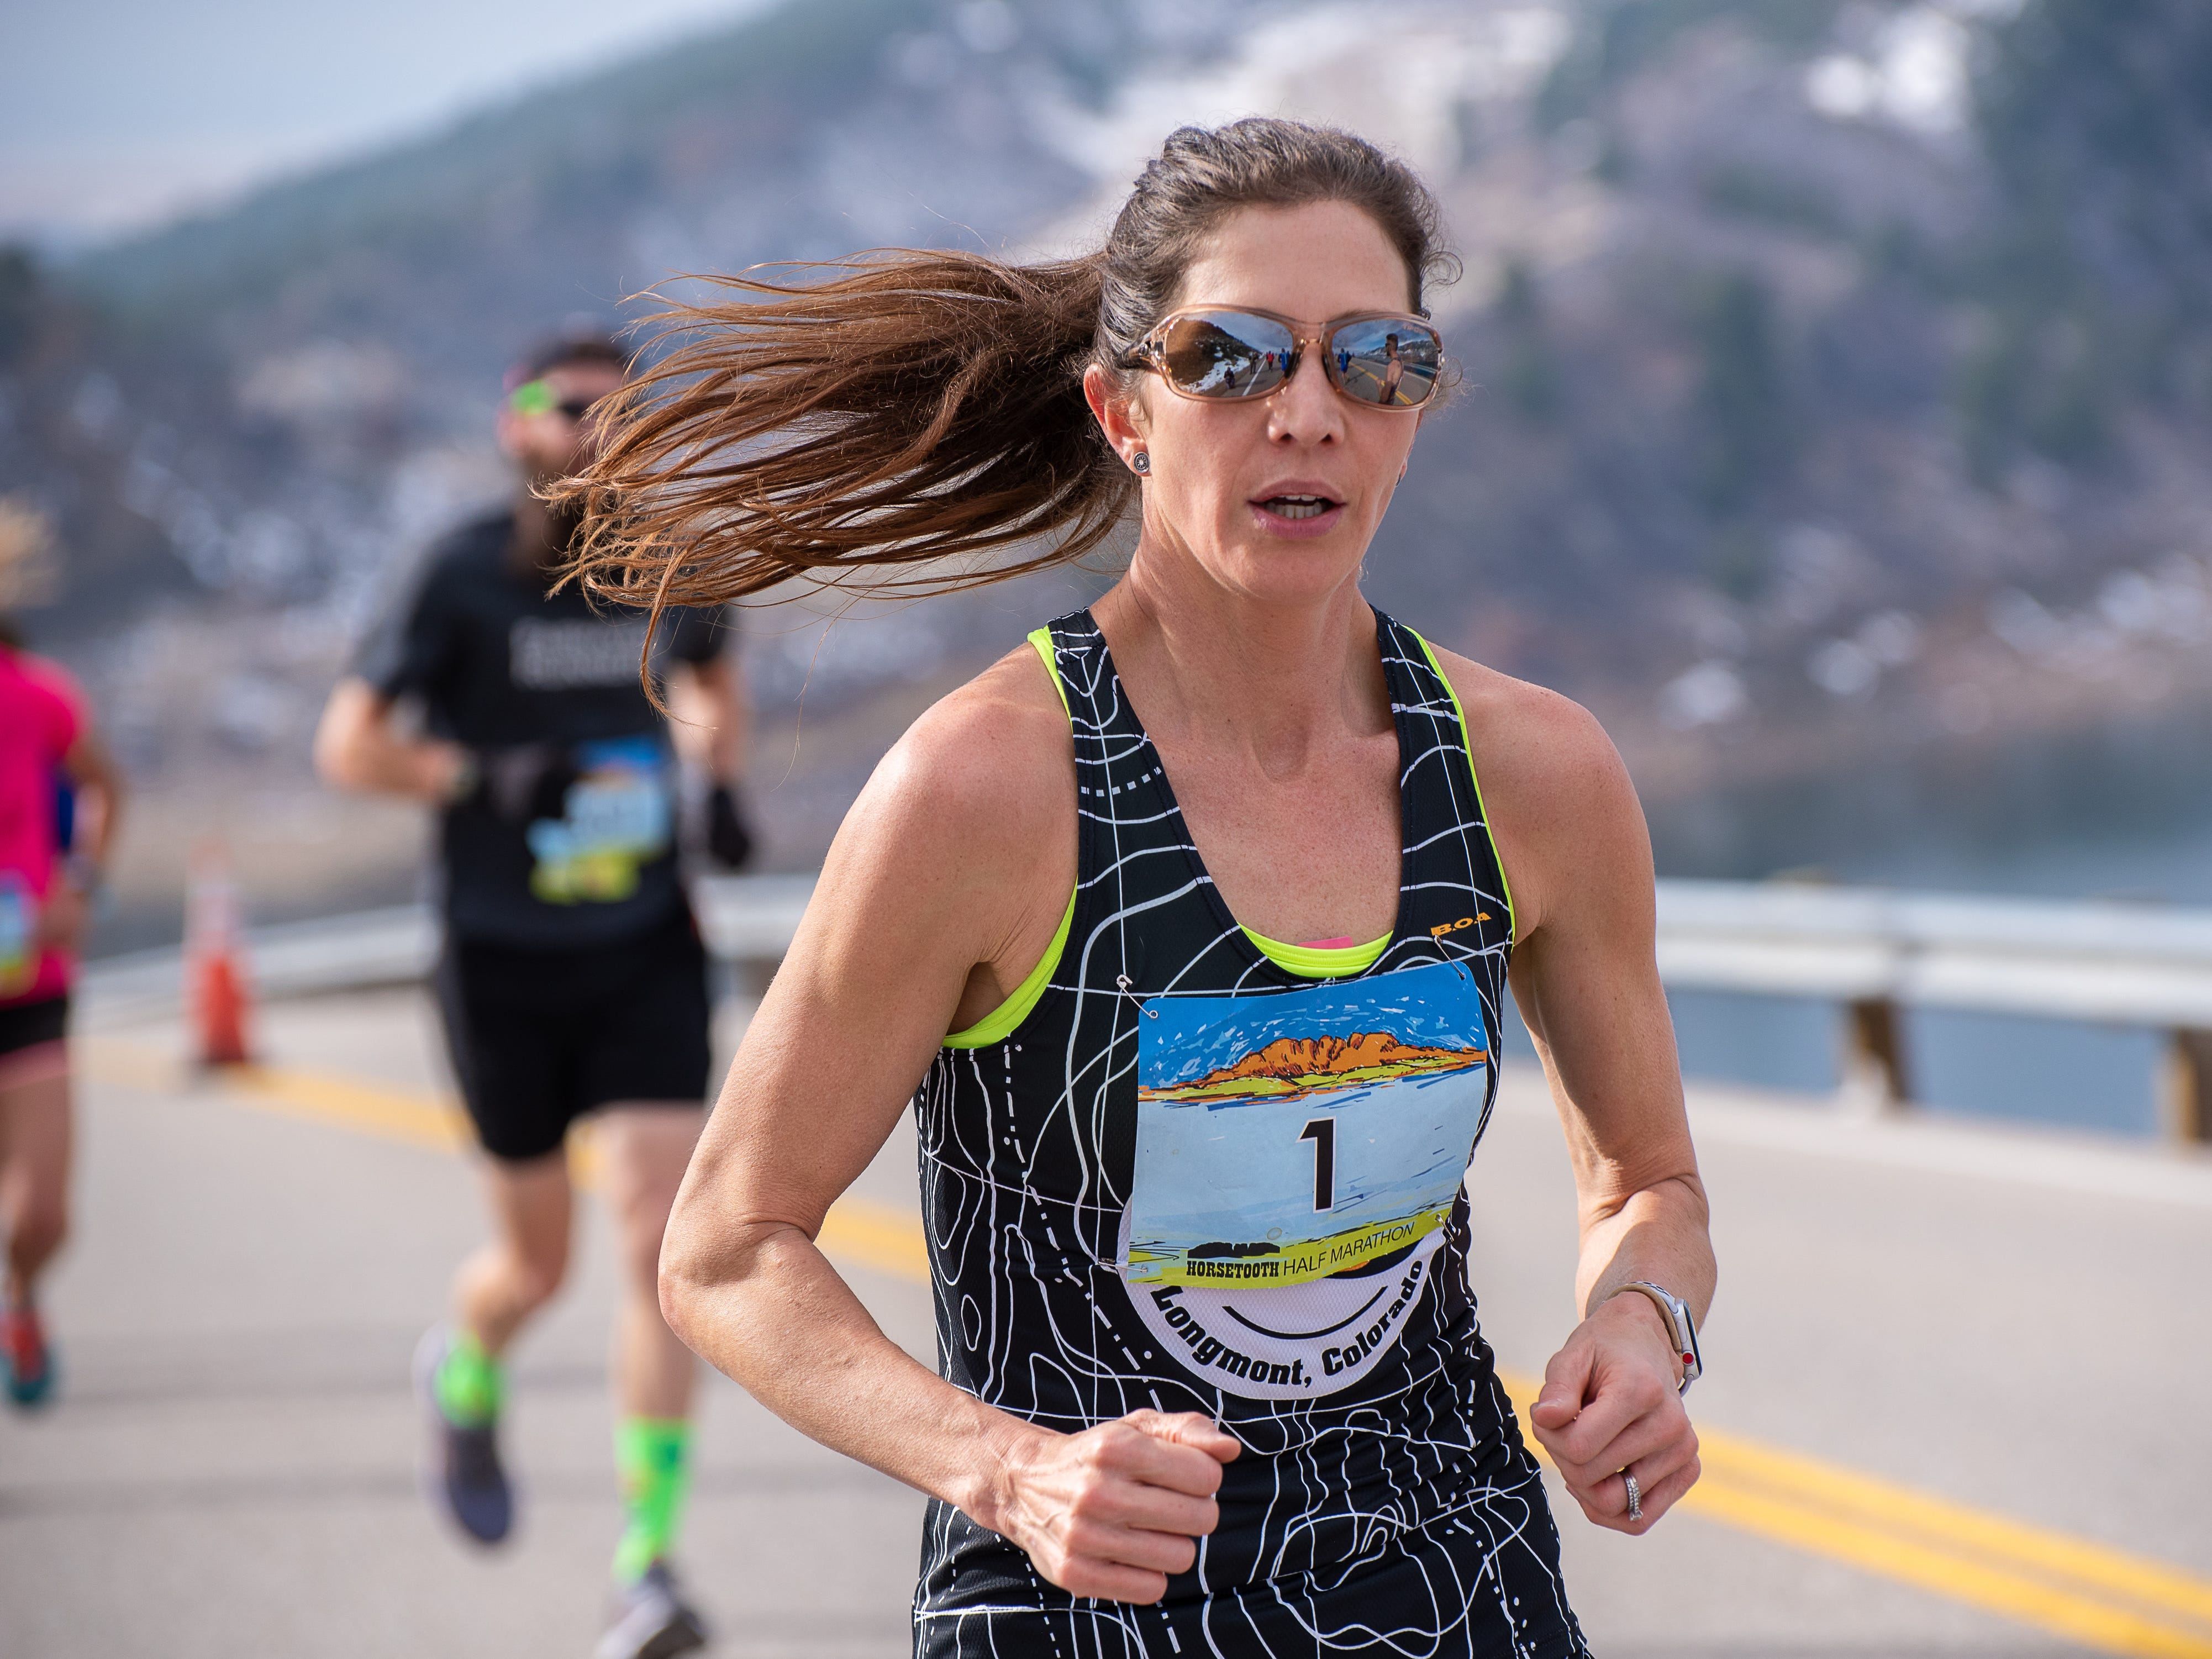 A group of runners near the top of Monster Mountain along Horsetooth Reservoir during the Horsetooth Half Marathon on Sunday, April 14 2019, in Fort Collins, Colo.